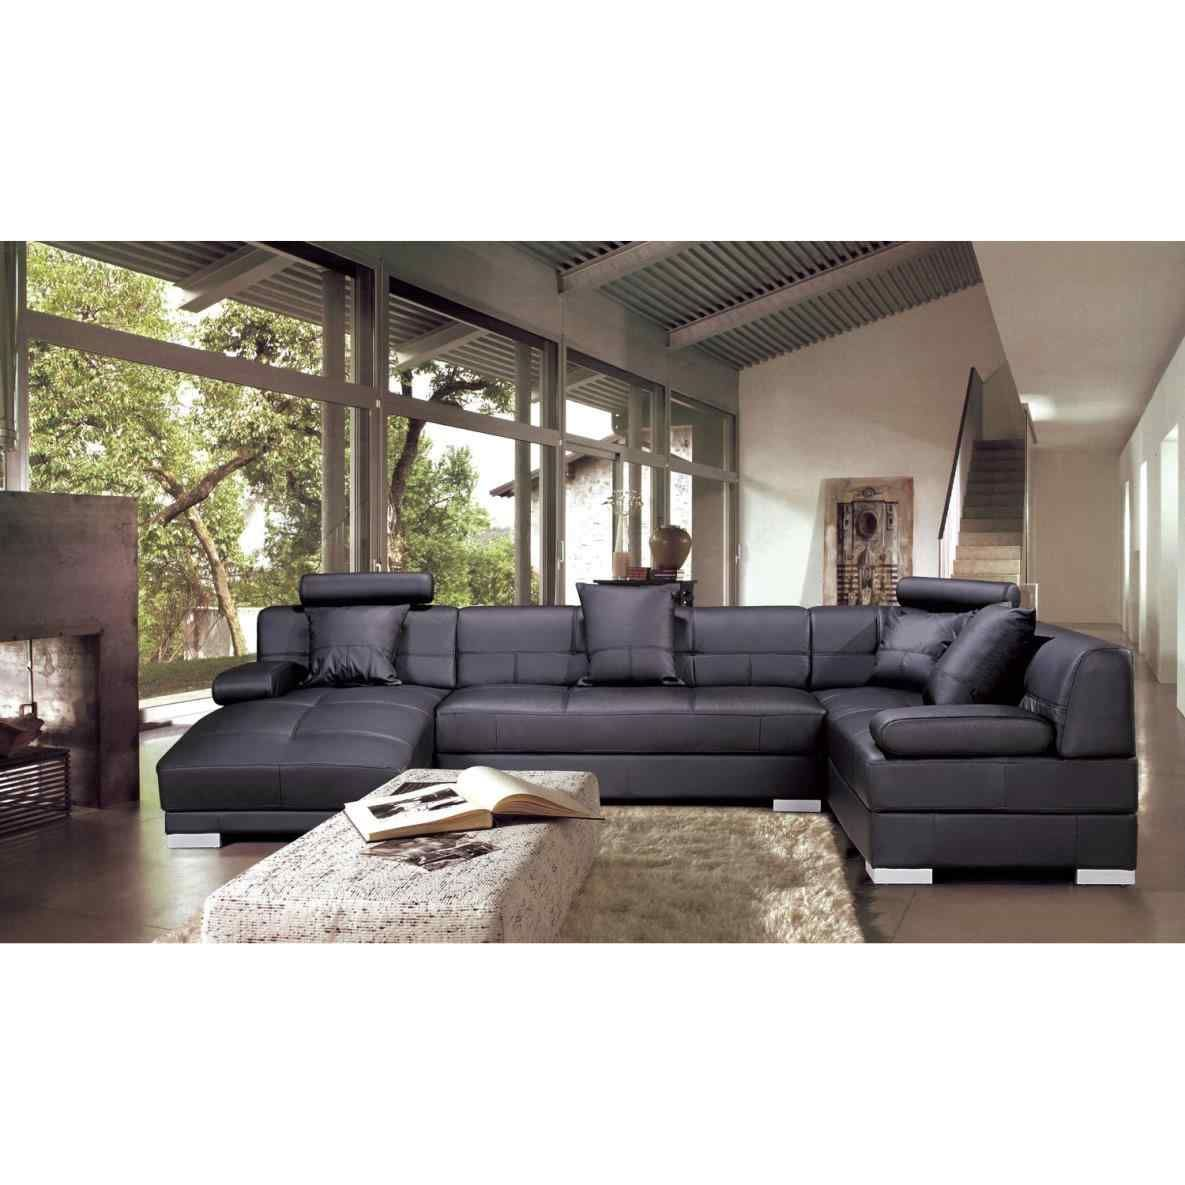 Pin On Discount Sectional Sofas For Sale #sears #living #room #furniture